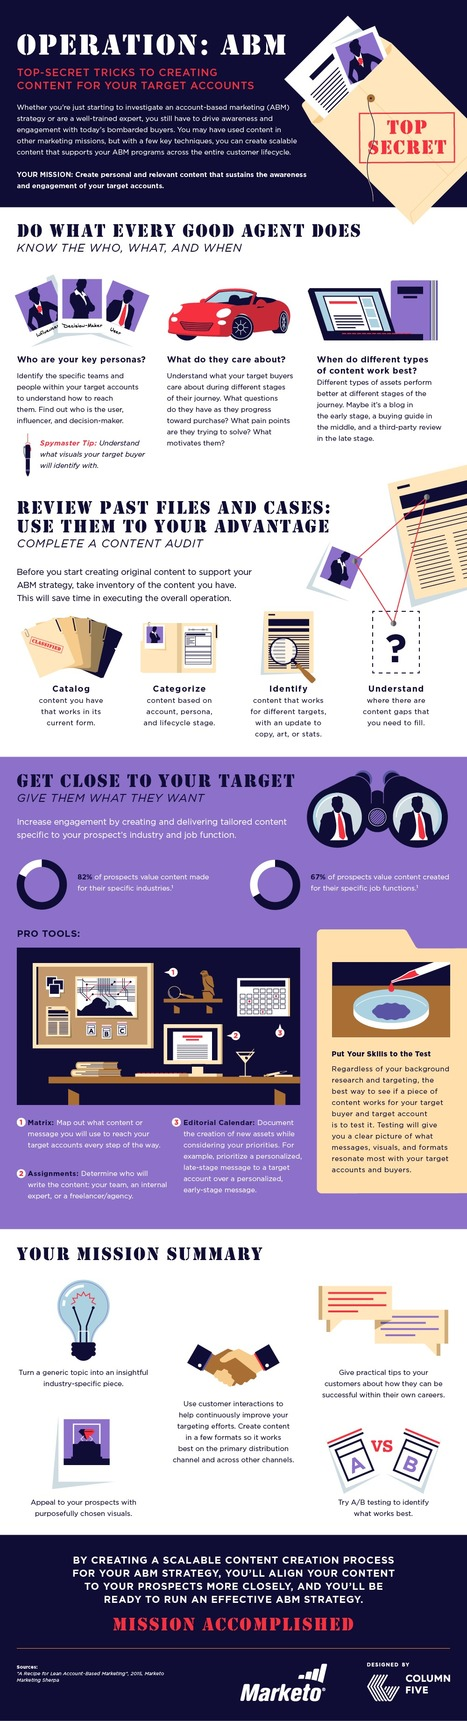 How to Create ABM Content #Infographic | MarketingHits | Scoop.it